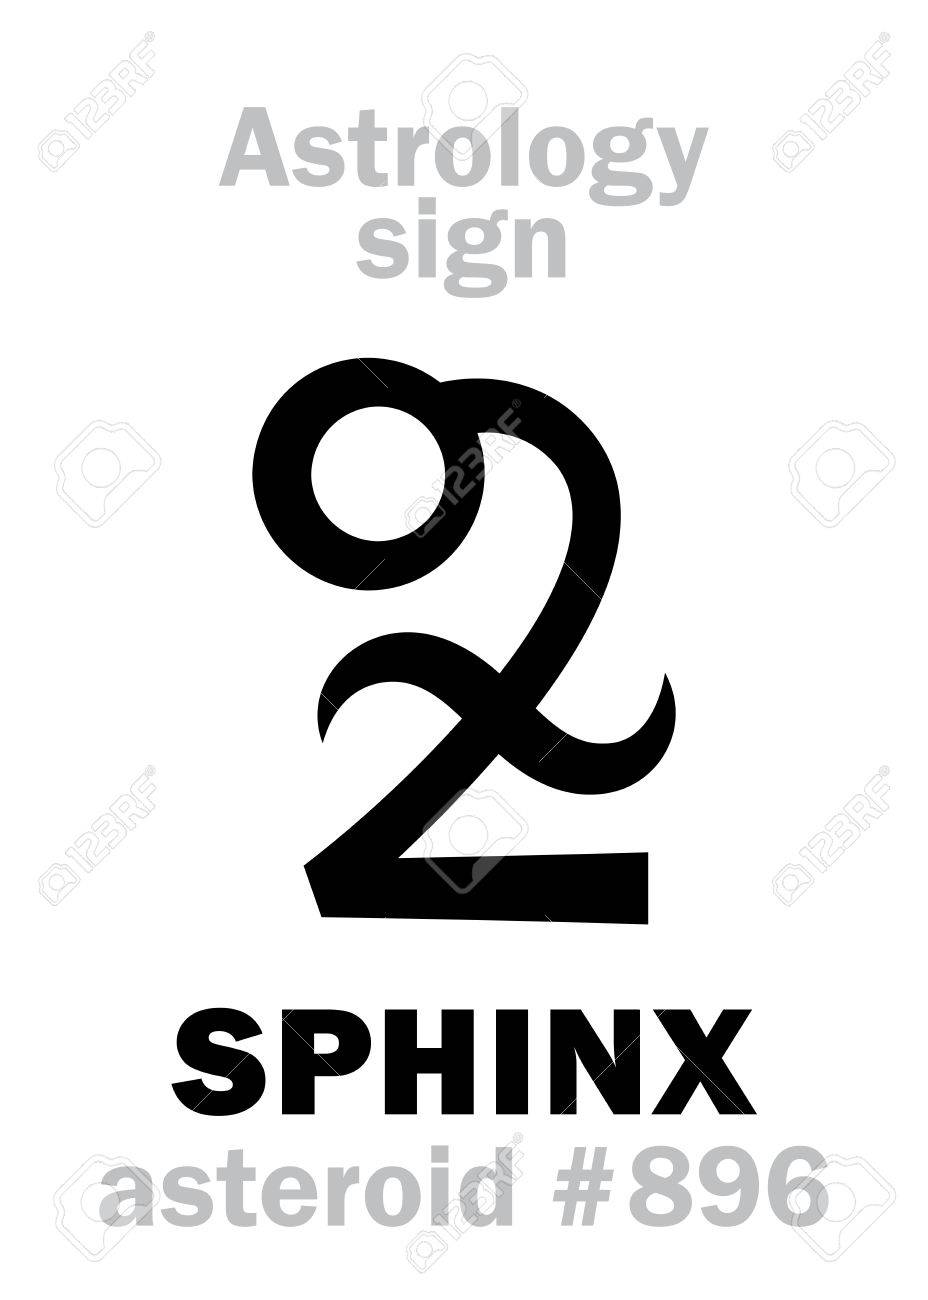 Astrology Alphabet: SPHINX, asteroid #896  Hieroglyphics character